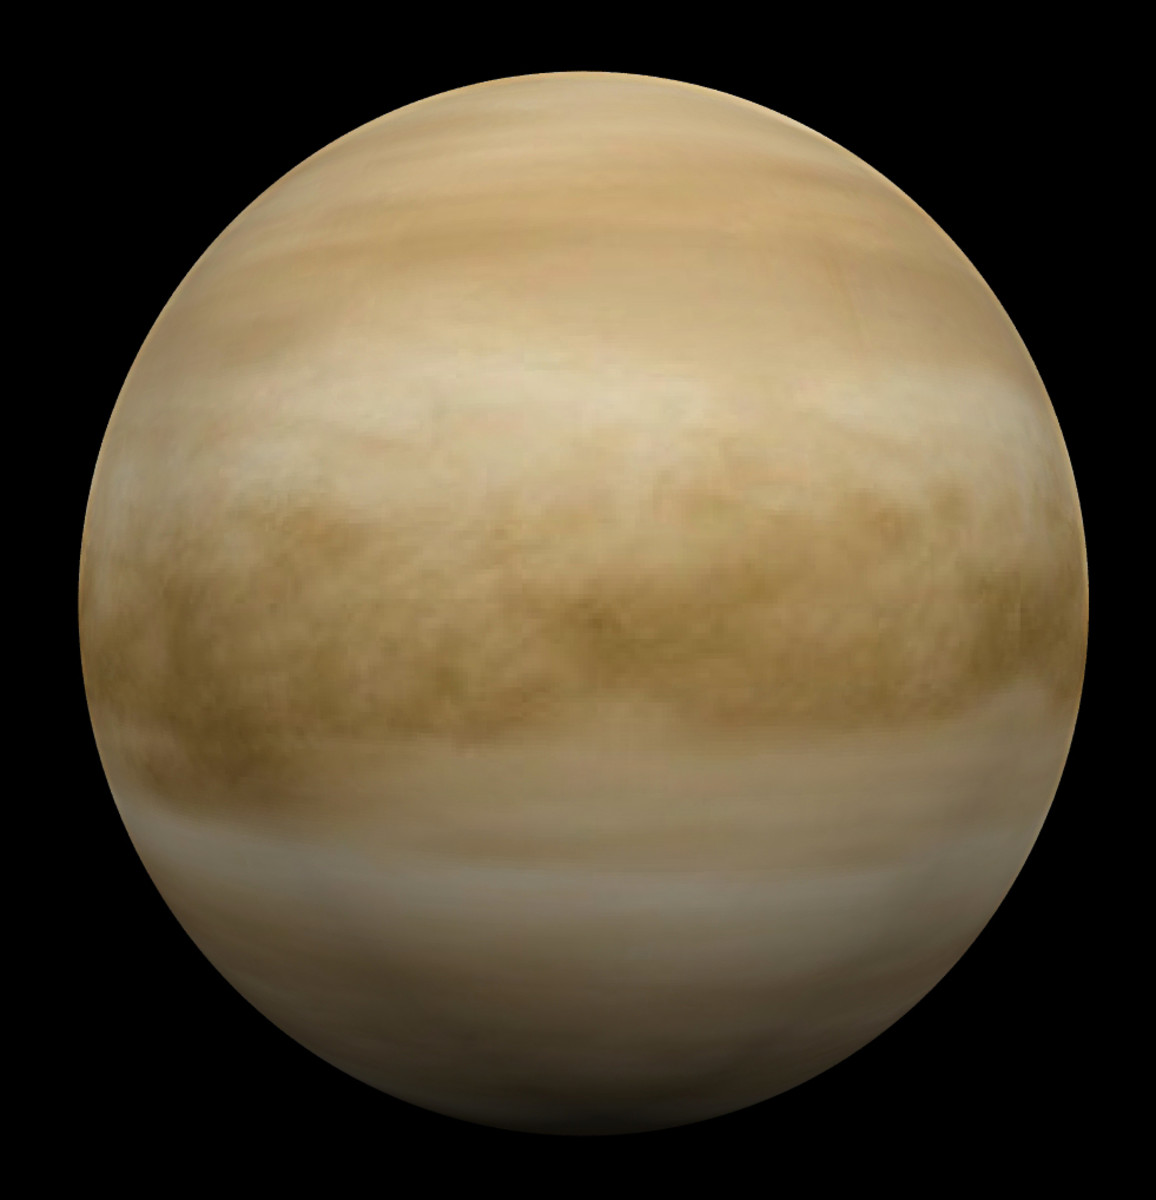 the planets venus physical features - photo #1